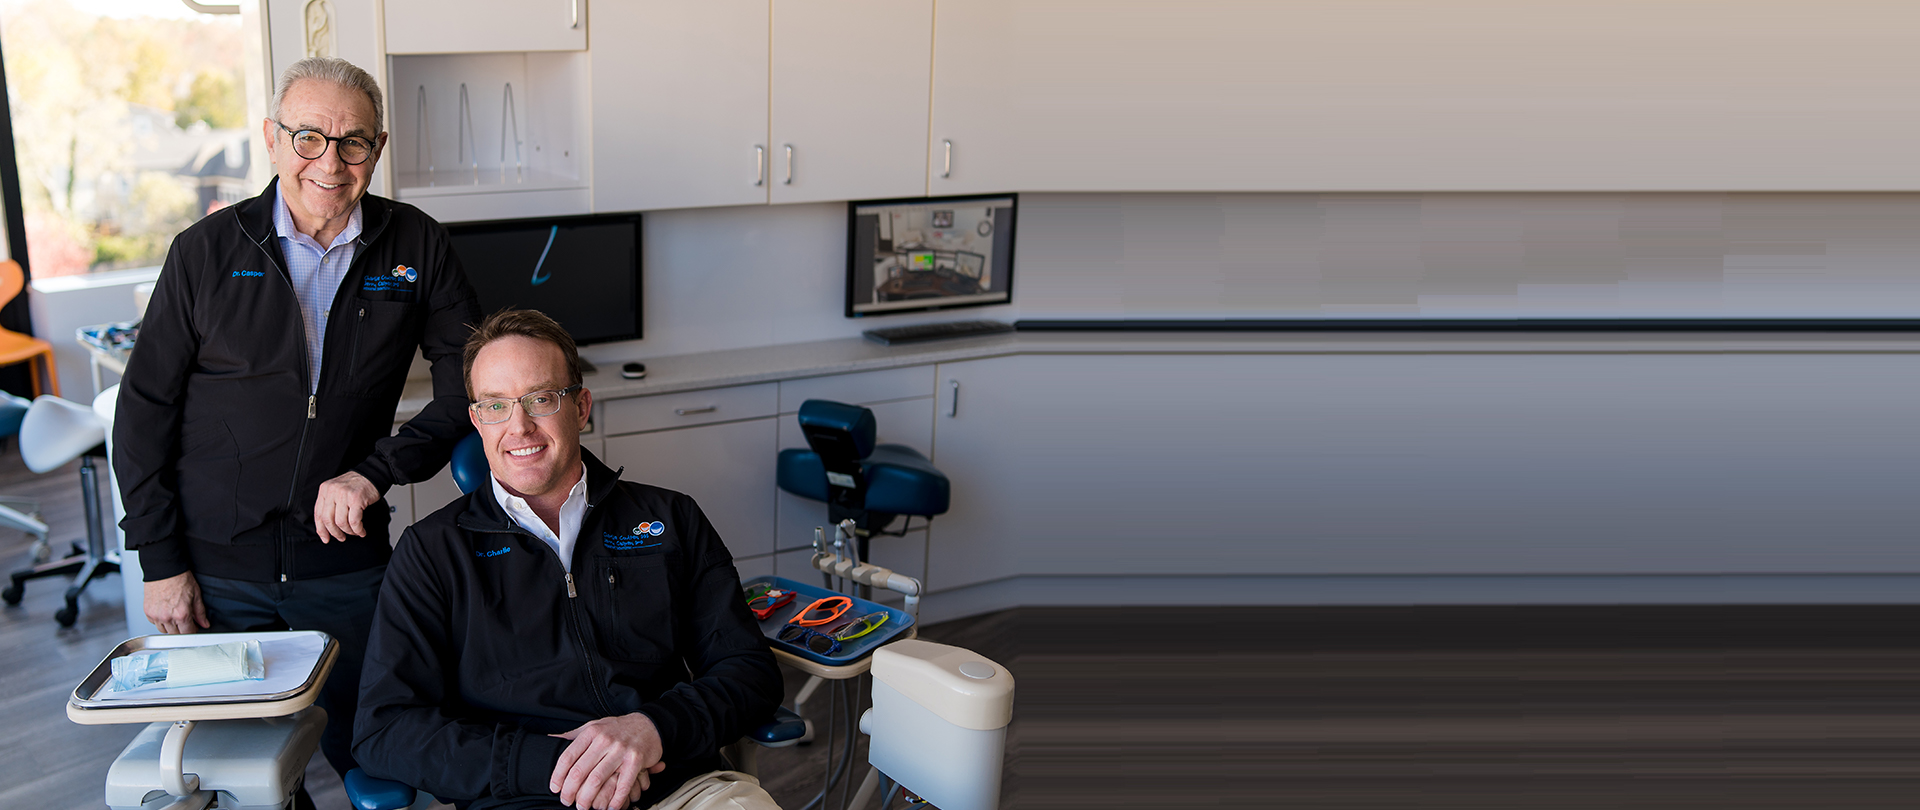 Dr. Charlie Coulter and Dr. Jerry Casper pose in the office of their pediatric dentistry practice in Washington, DC.